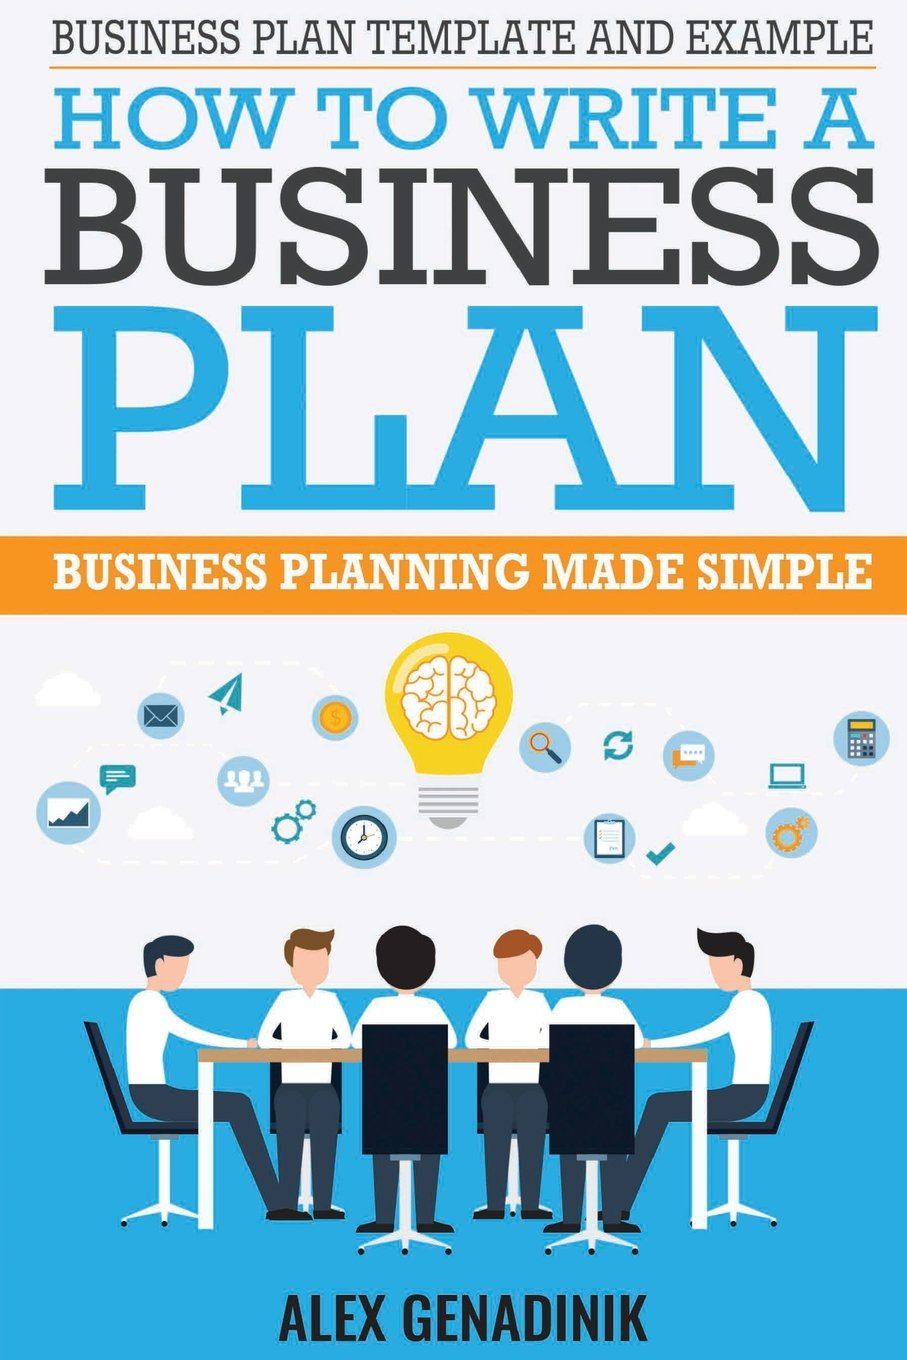 Business plan template and example how to write a business plan business plan template and example how to write a business plan business planning made simple alex genadinik 9781519741783 amazon books friedricerecipe Gallery